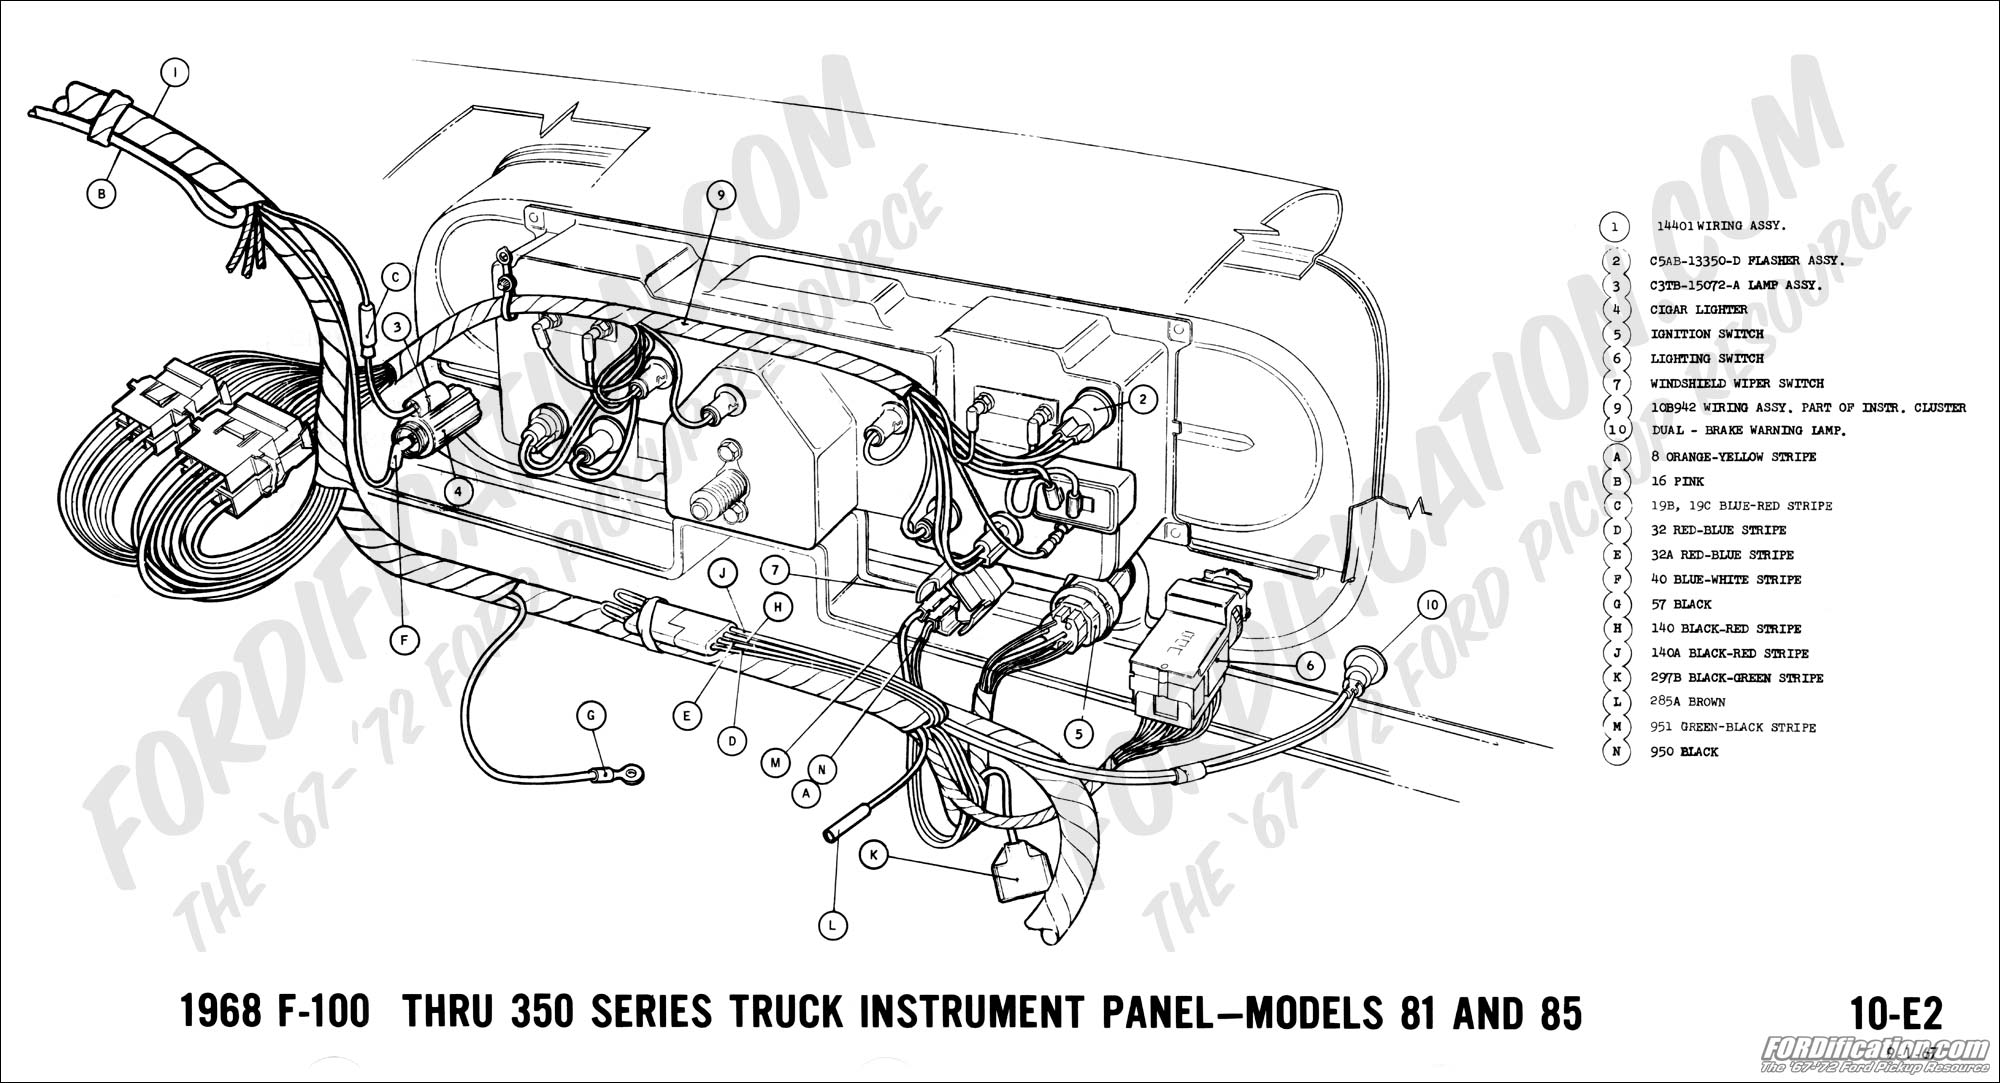 1972 ford f100 wiring diagram mercruiser mechanical fuel pump for  the